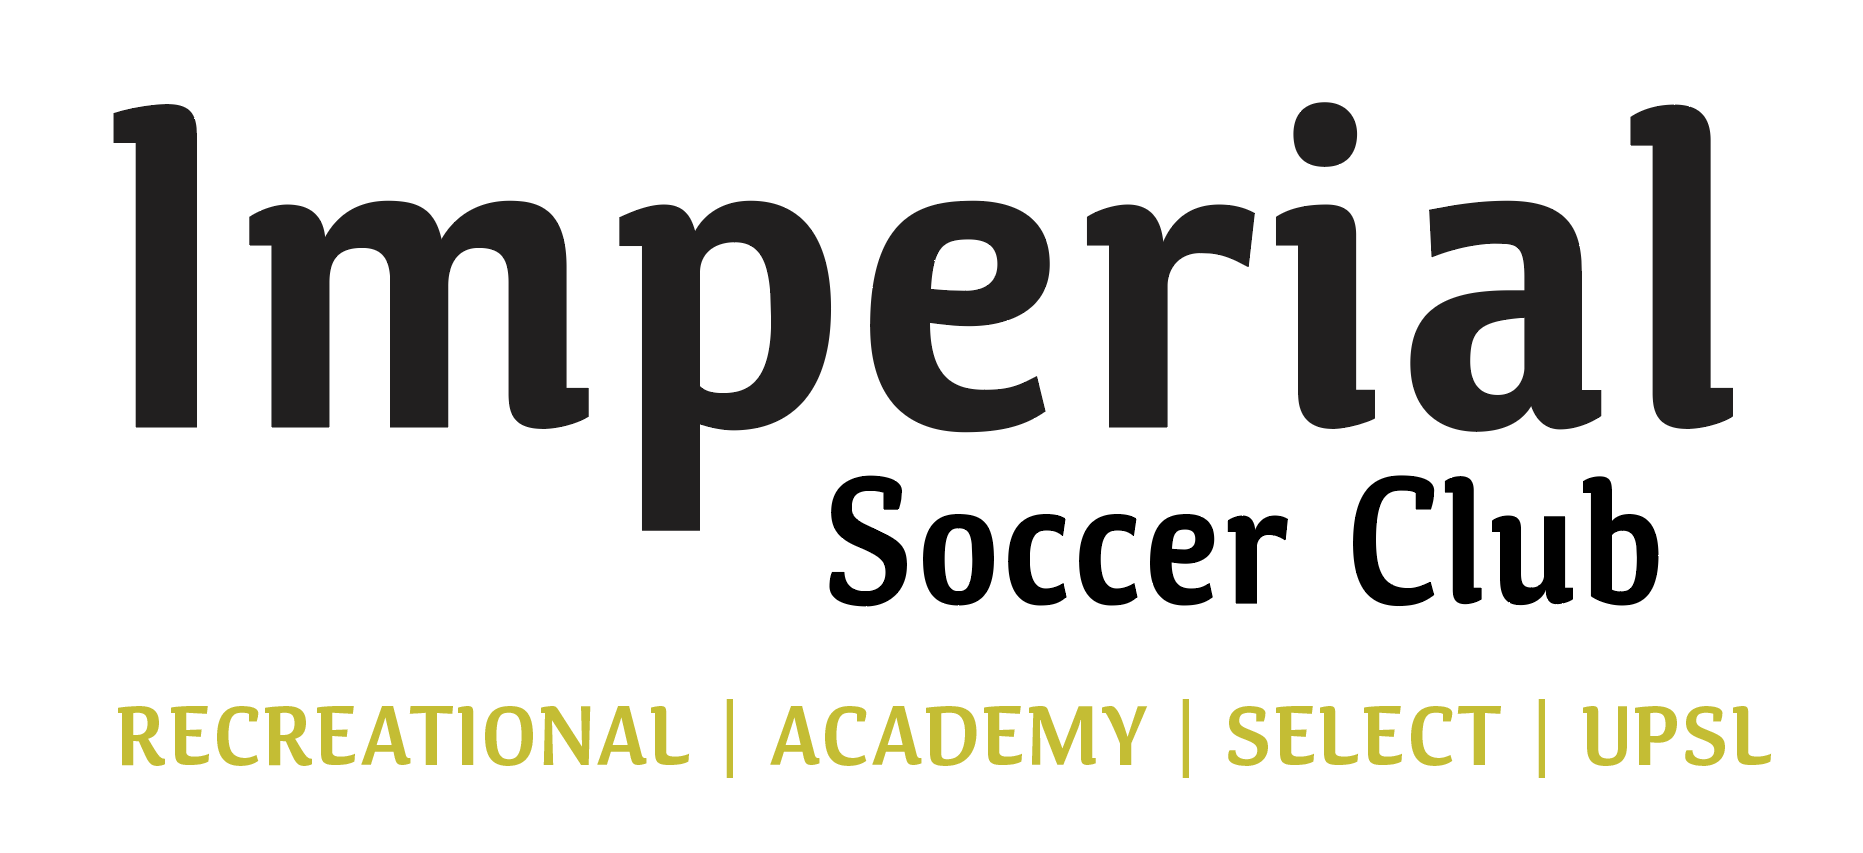 Imperial Soccer Club - Recreational Soccer - Competitive Soccer - Academy Soccer